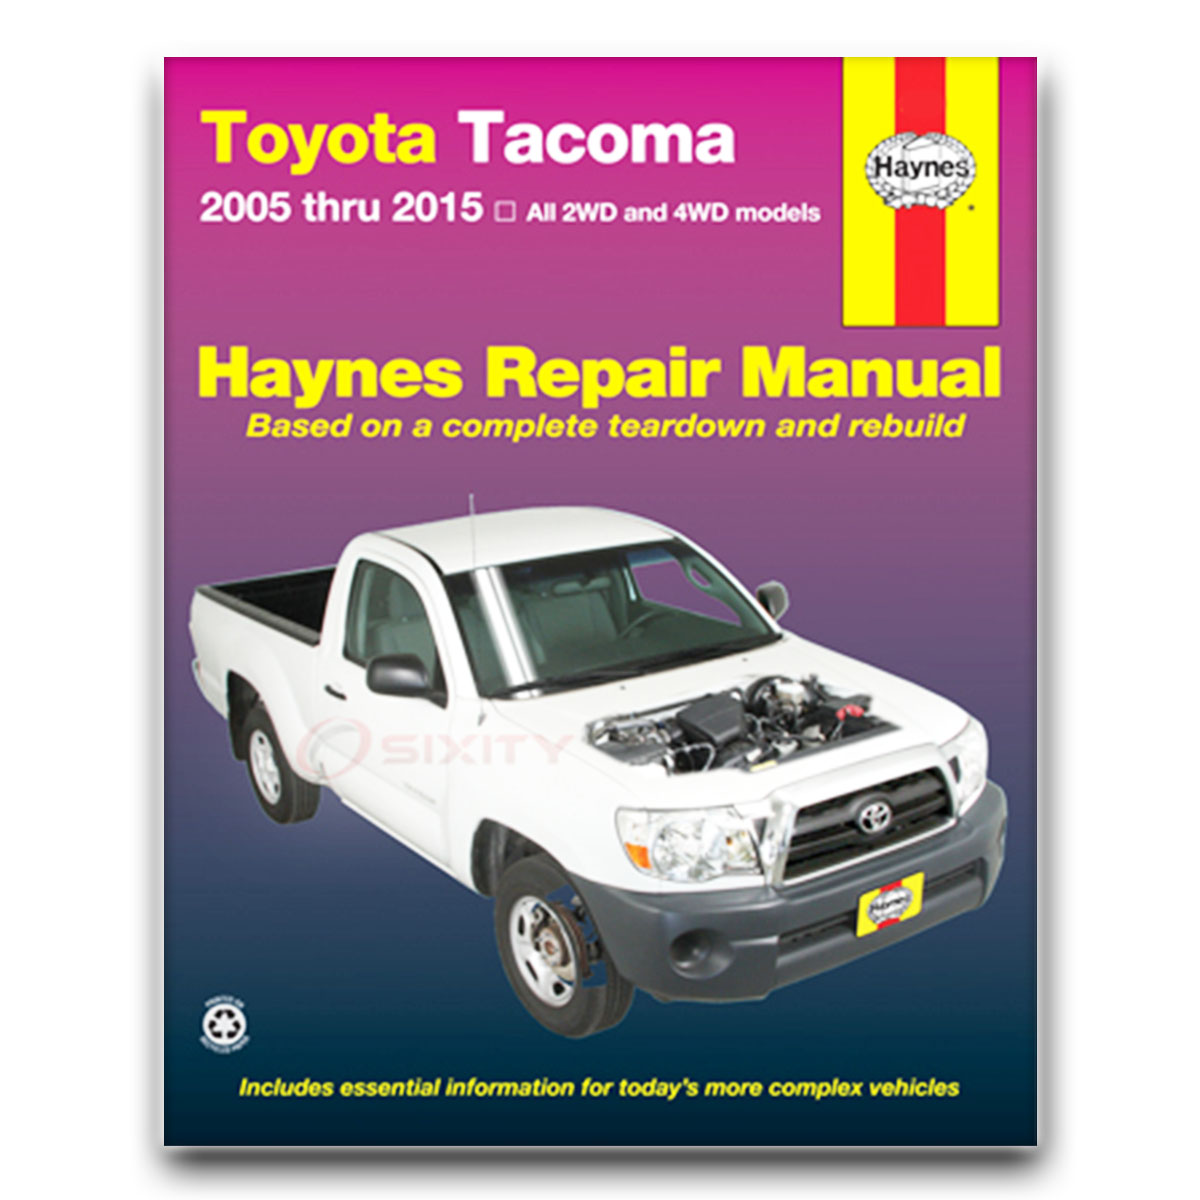 Haynes Repair Manual For 2005-2009 Toyota Tacoma